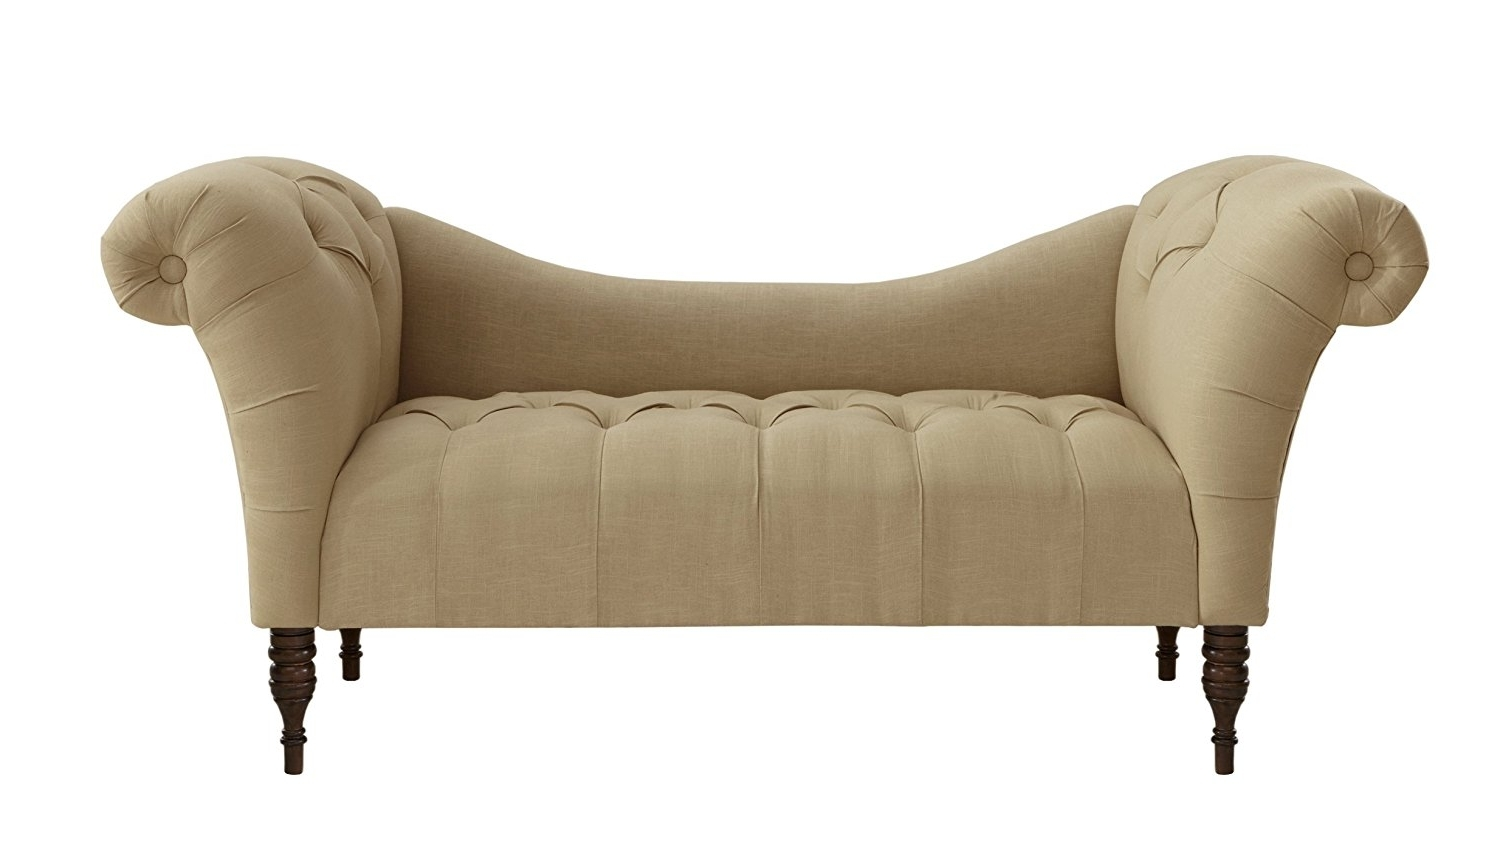 Chaise Lounge Benchs In 2017 Amazon: Skyline Furniture Tufted Chaise Lounge In Linen (View 4 of 15)